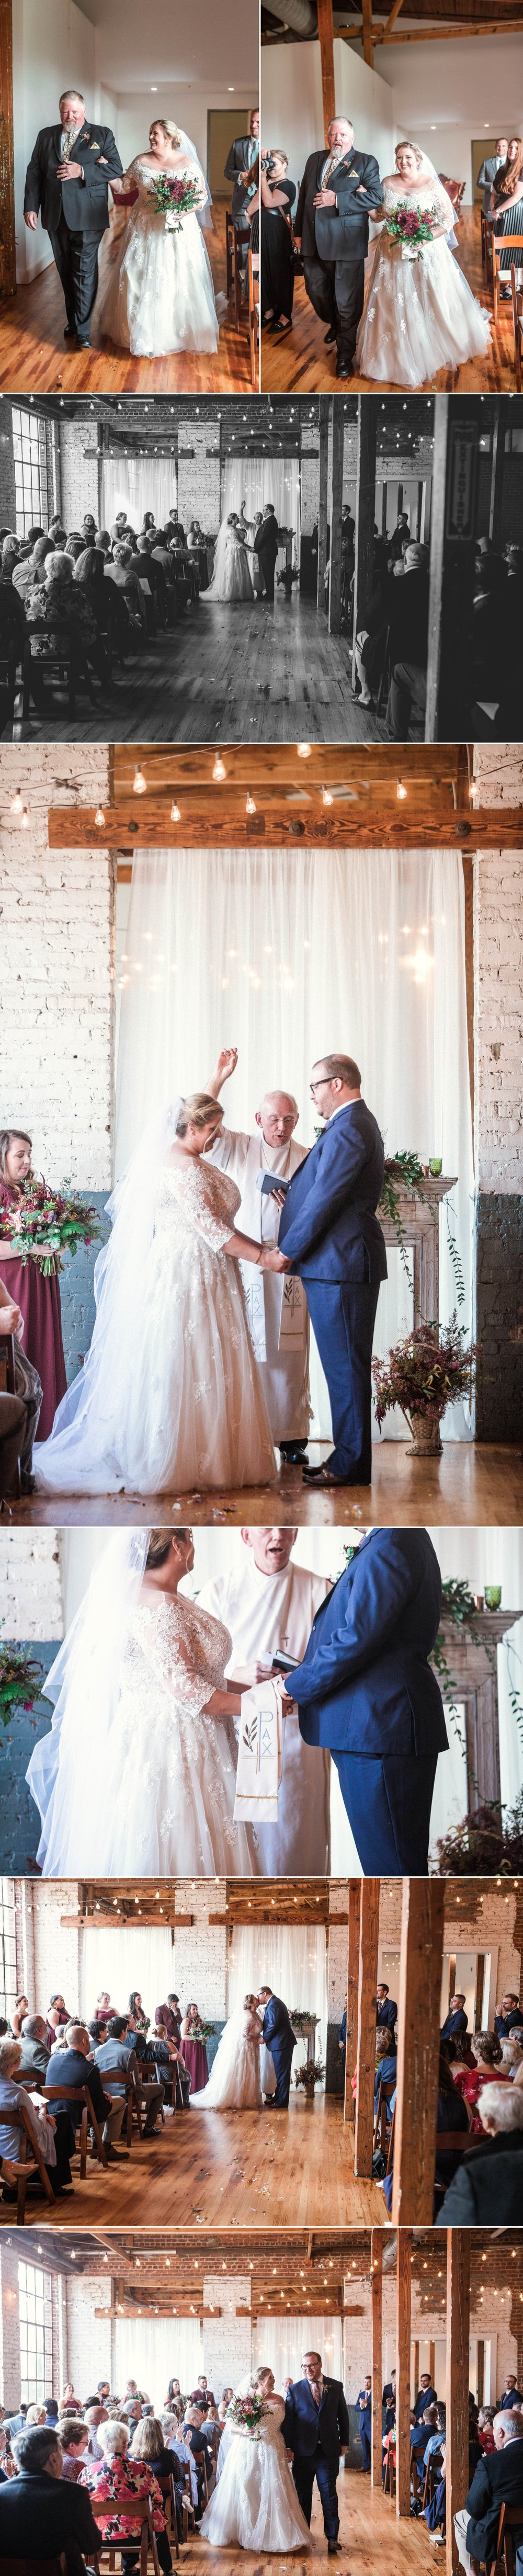 Romantic Industrial Wedding Ceremony - Brittany + Douglas - Forest Hall at Chatham Mills in Pittsboro, NC - Raleigh North Carolina Wedding Photographer